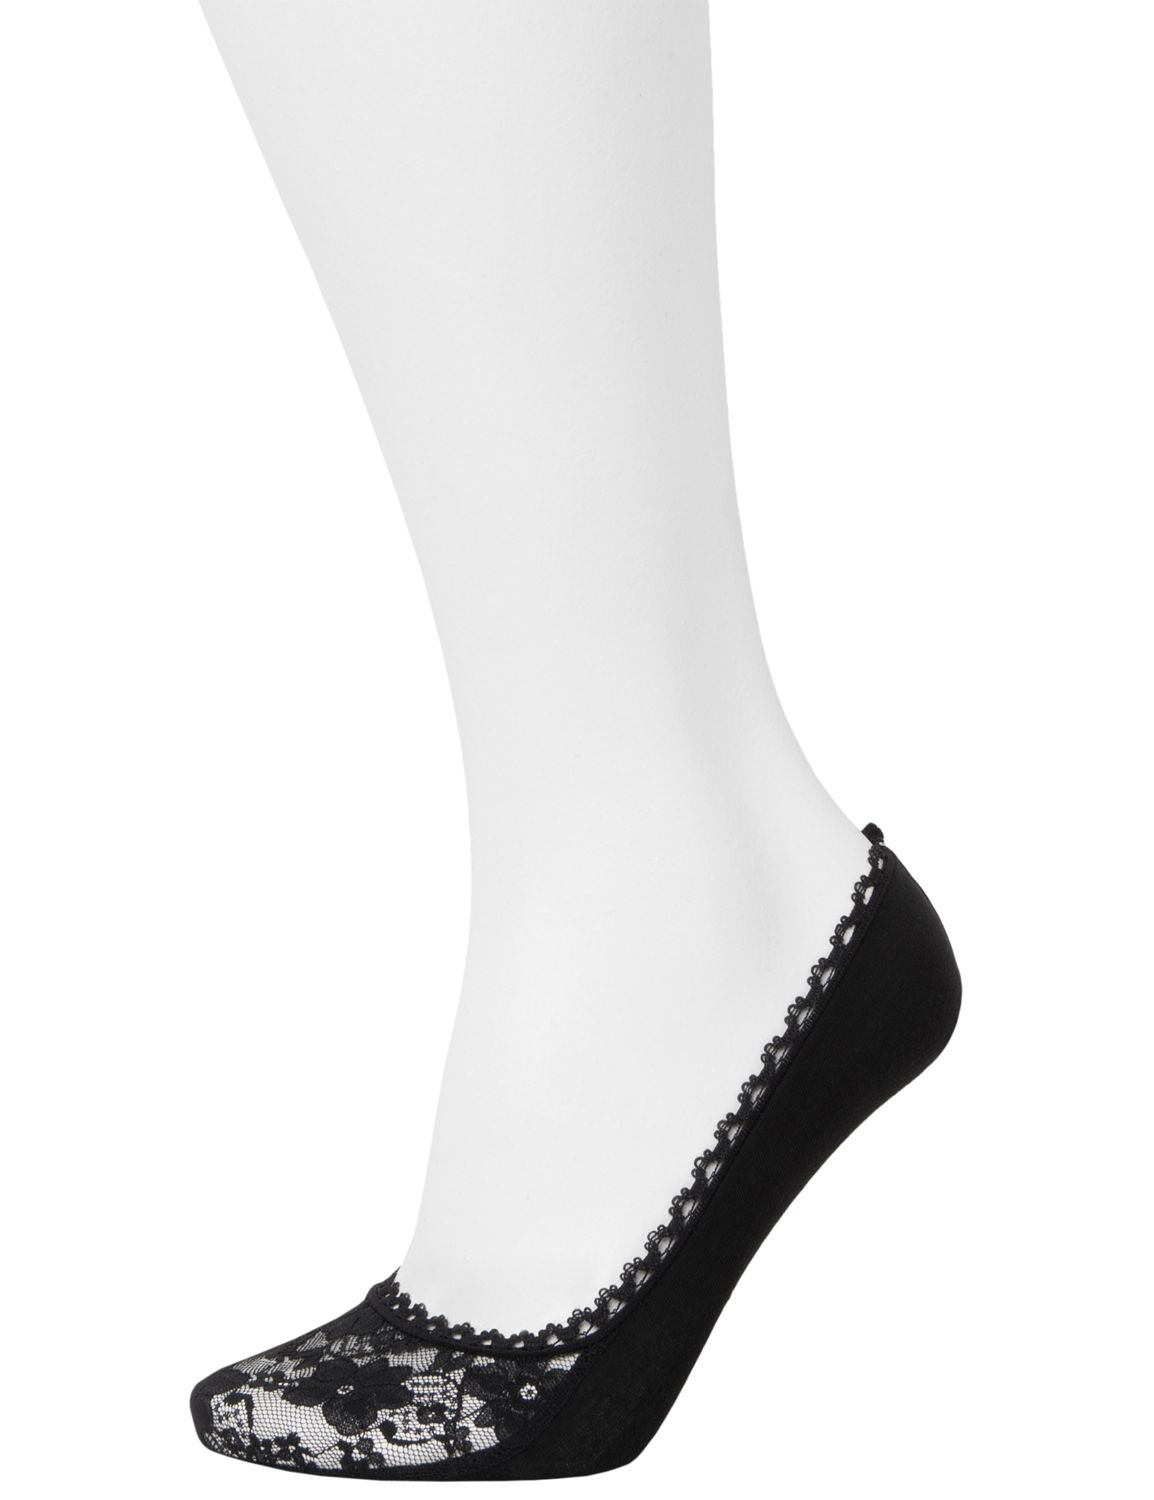 Lace & solid foot liners 2 pack | Plus size tights, Lane